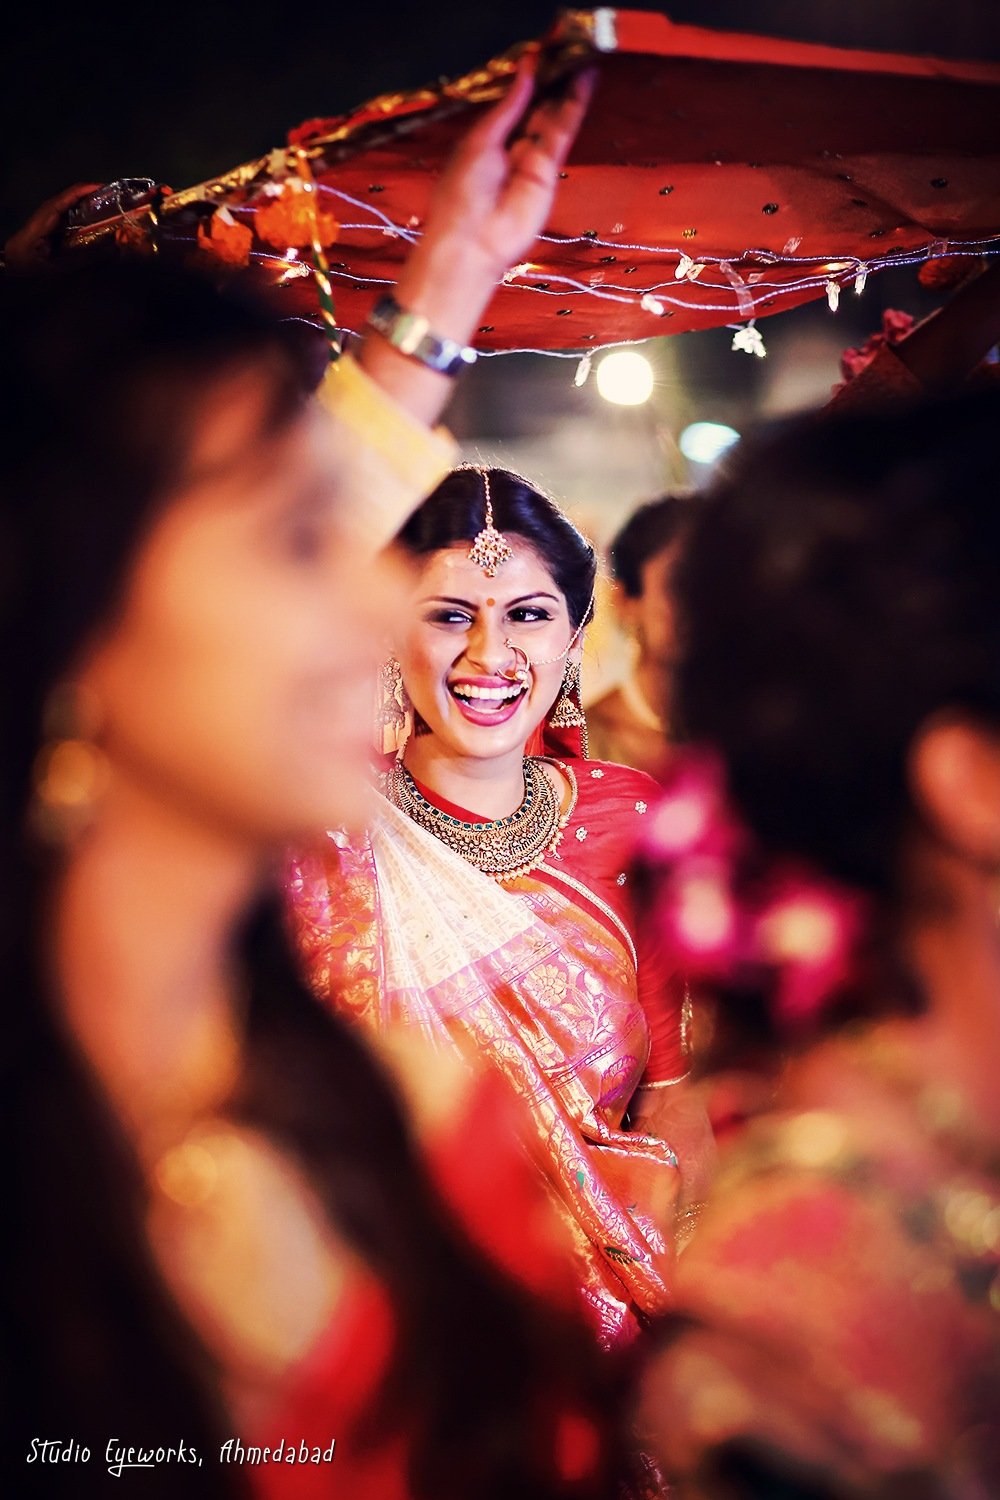 Candid Wedding Photography By Studio Eyeworks, Ahmedabad, Gujarat, India by Studio Eyeworks